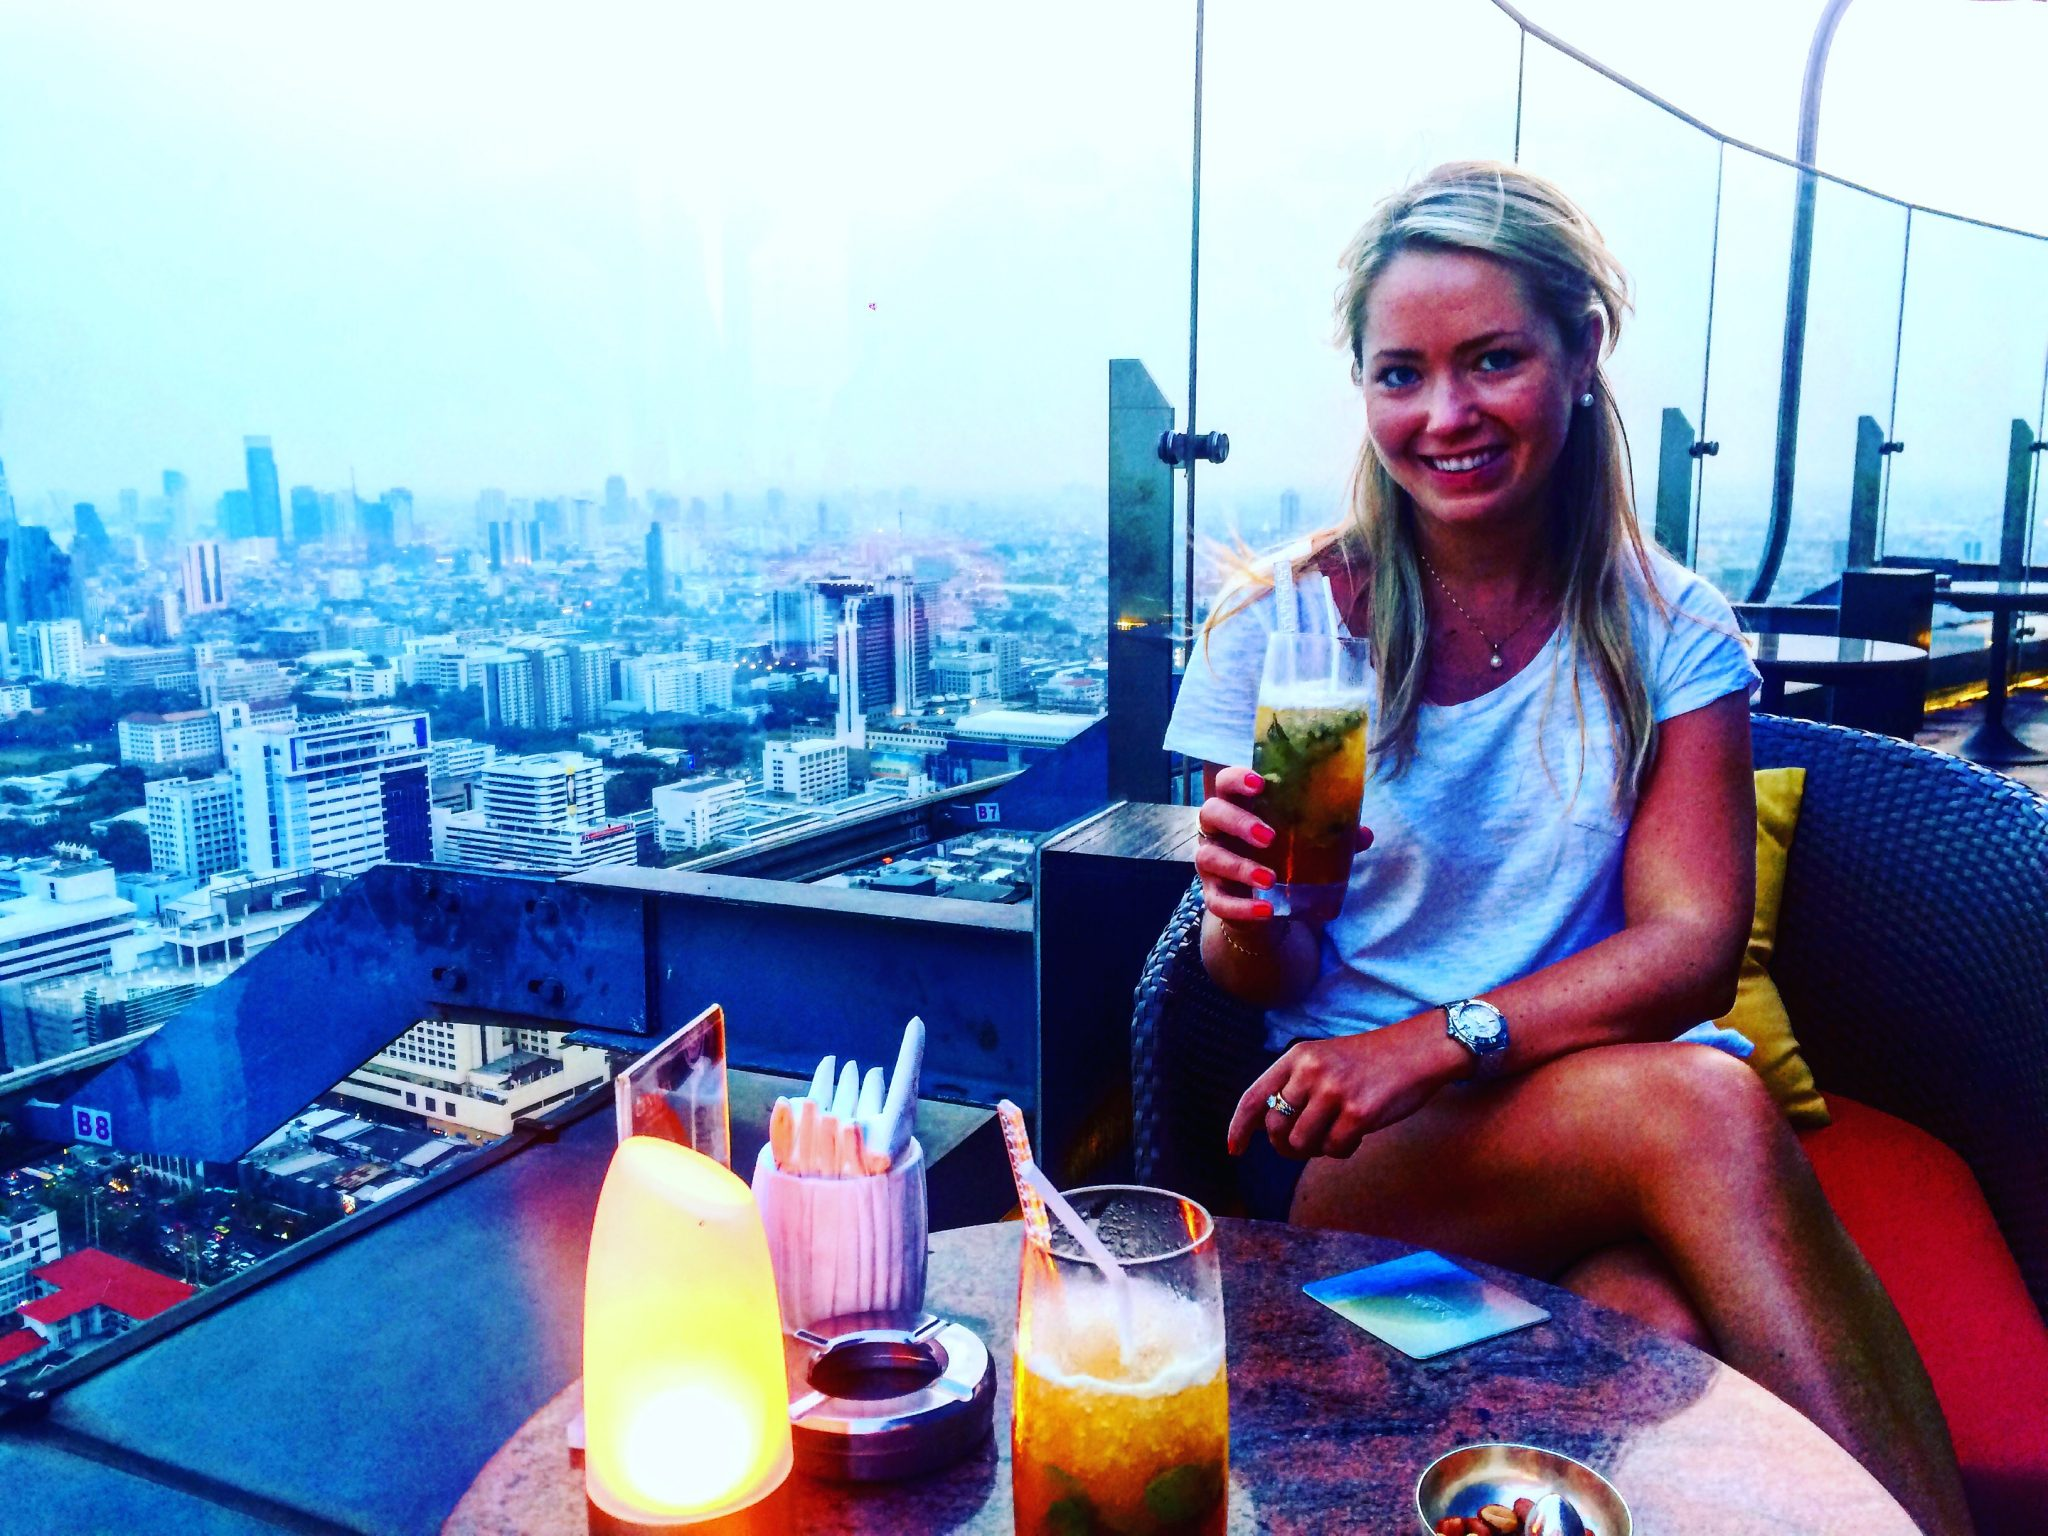 A picture of me having cocktails at the Red Sky rooftop bar